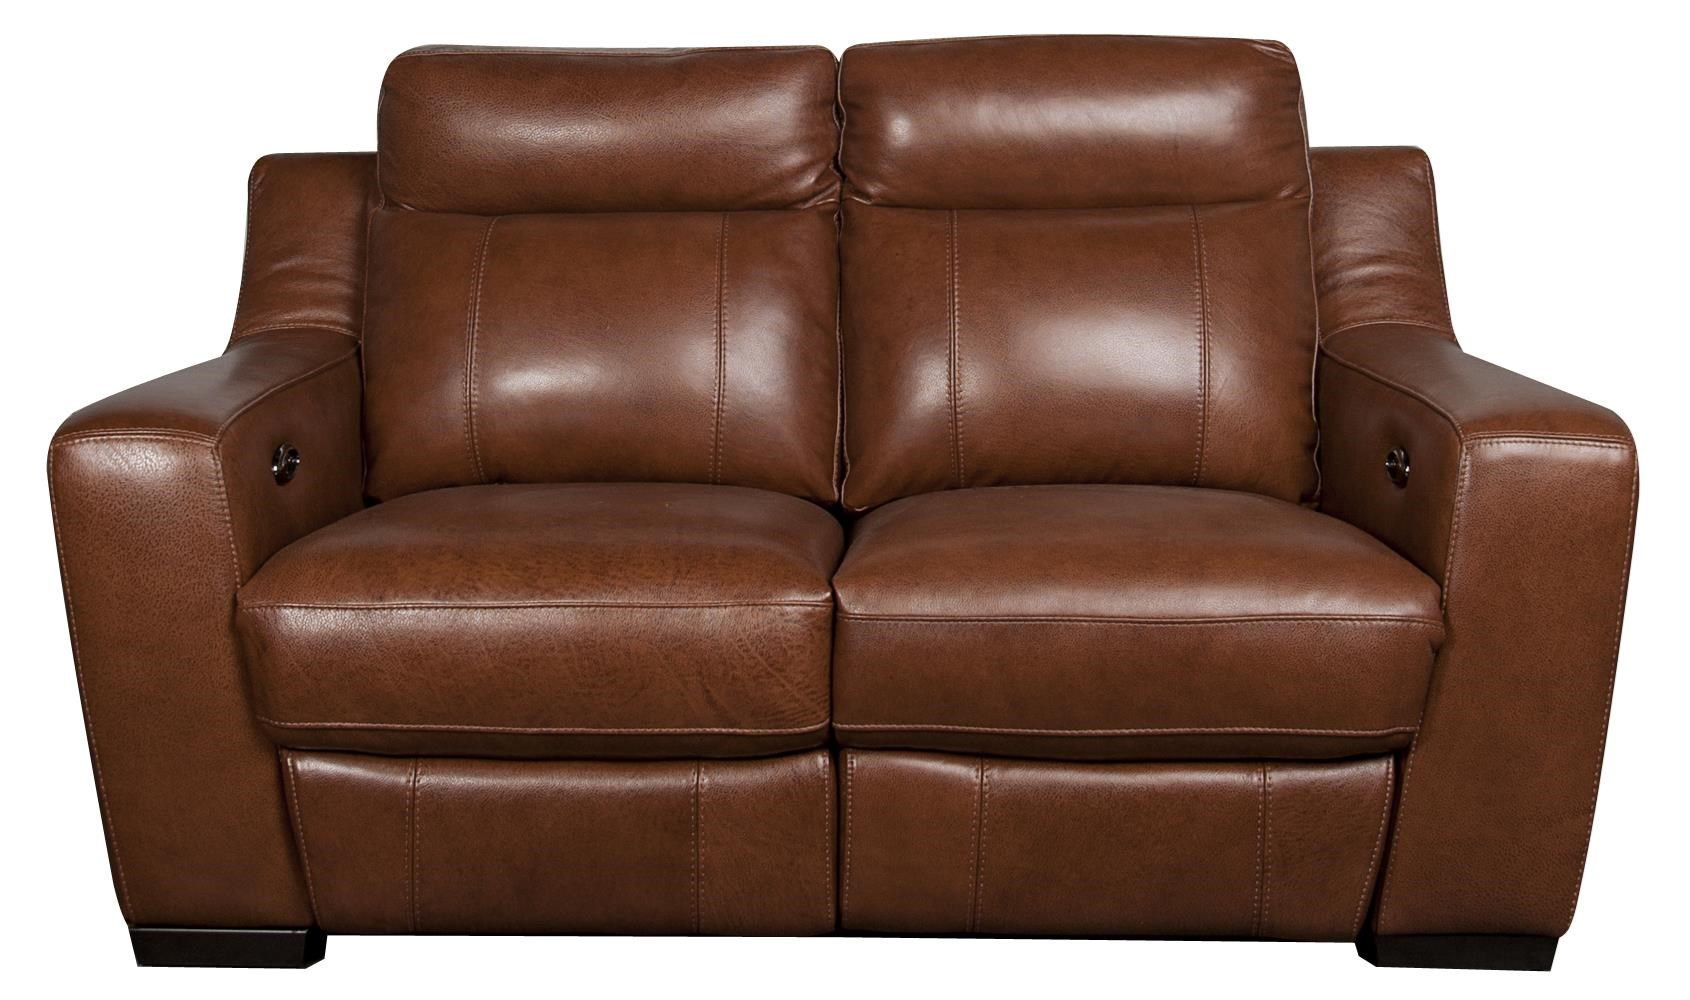 San Lorenzo Andy Leather Match Power Reclining Loveseat Morris Home Reclining Love Seats